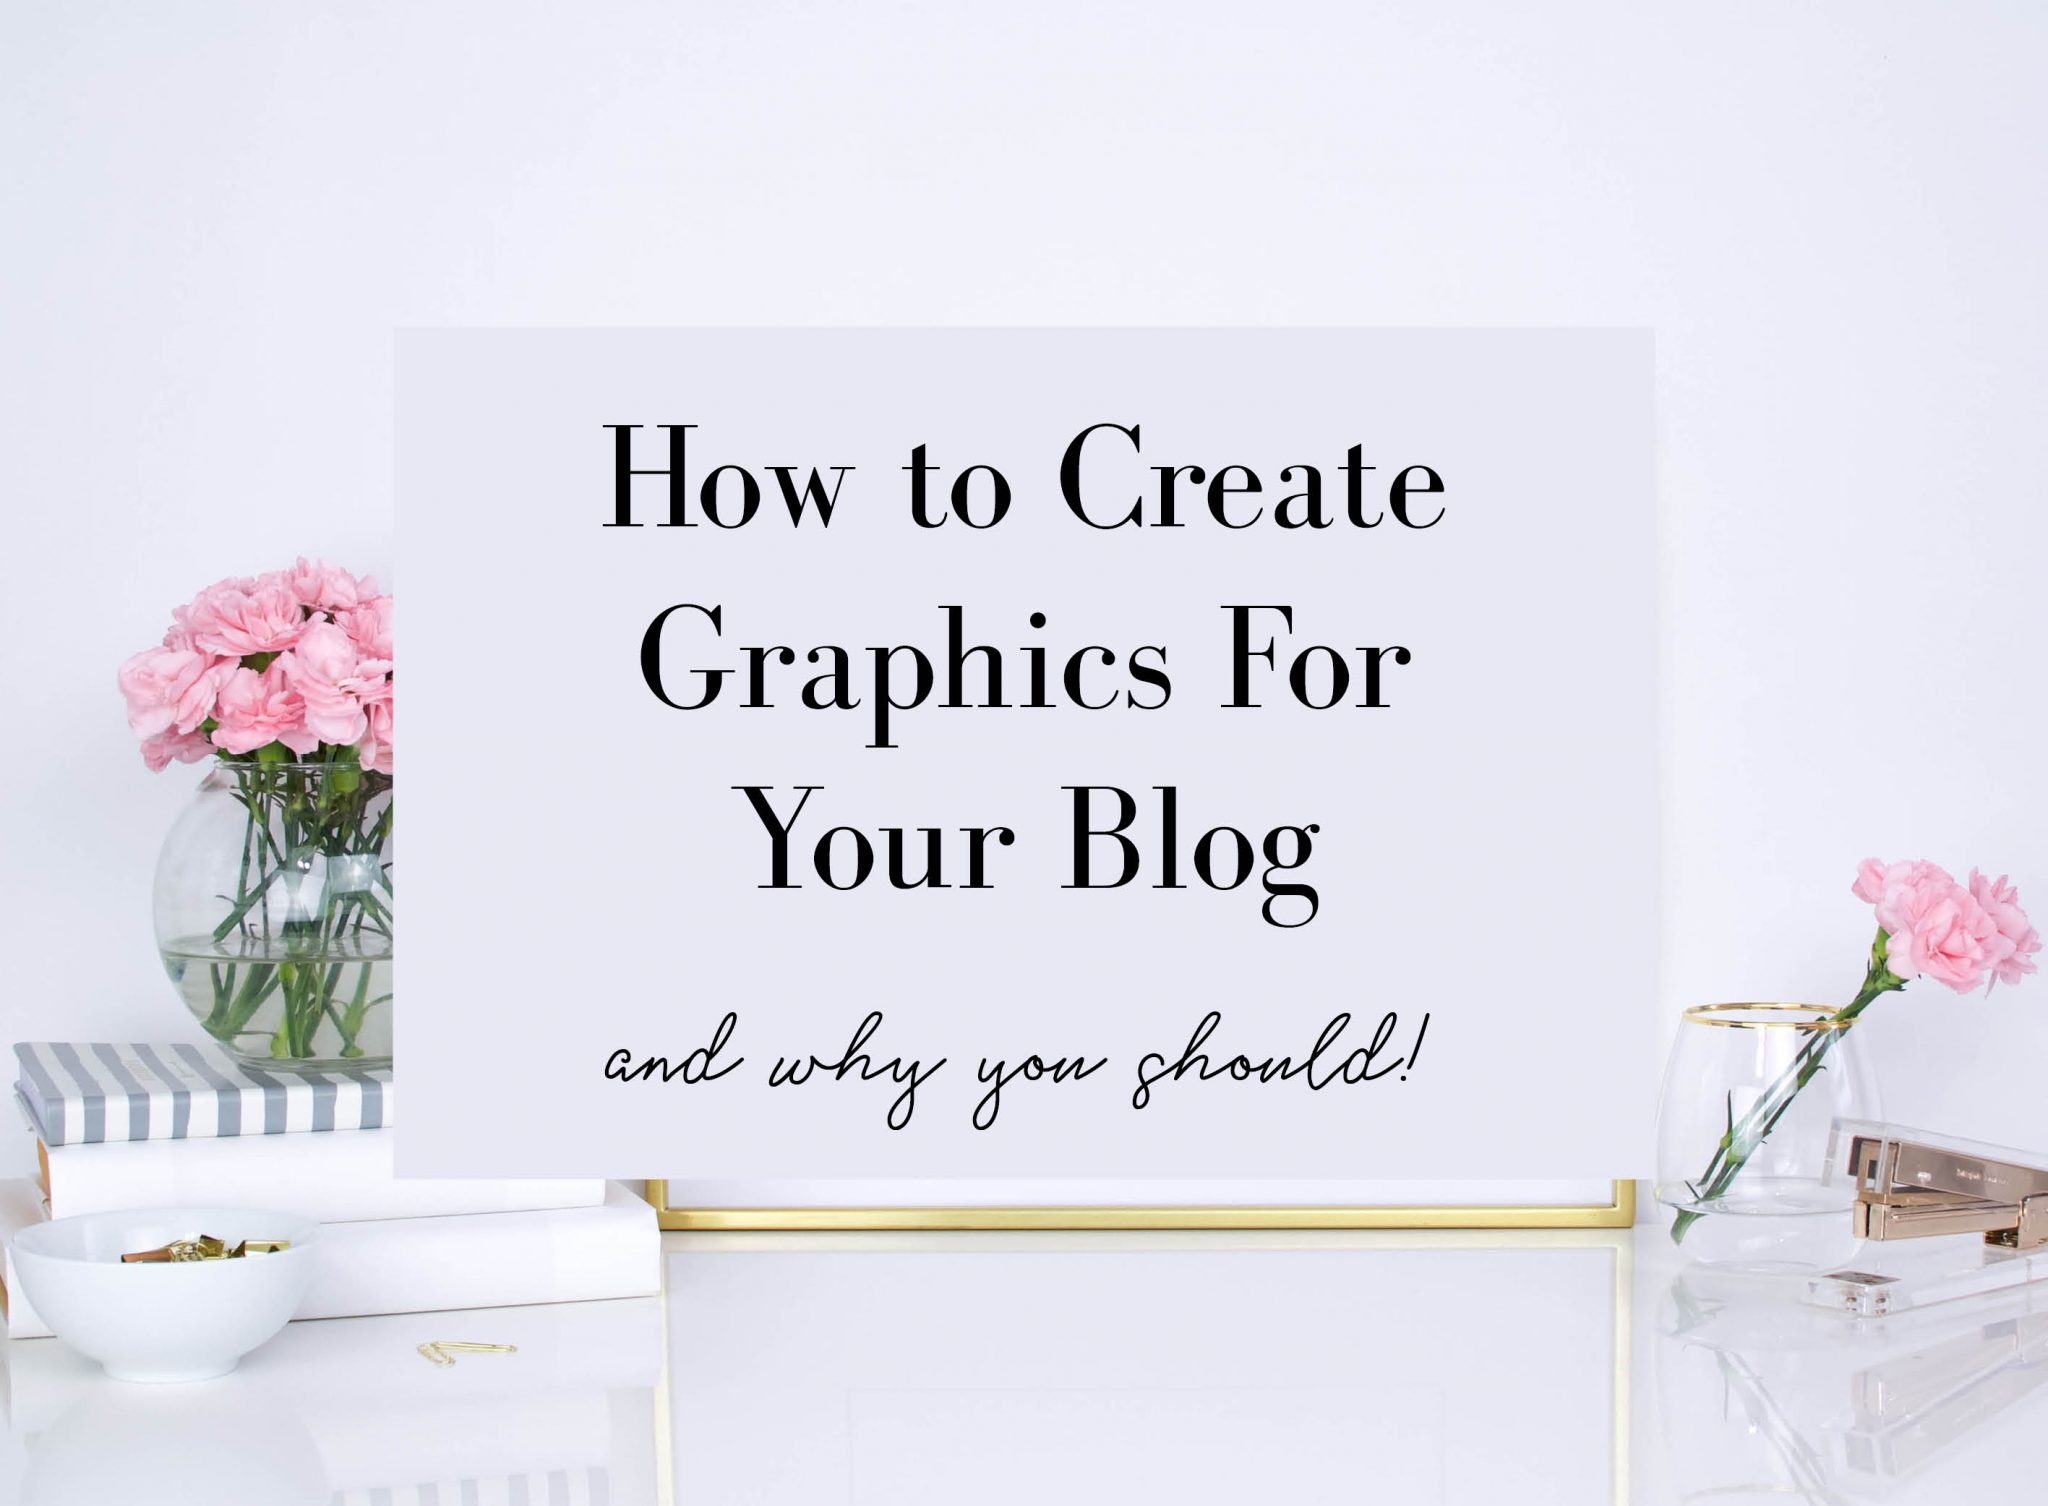 How to Create Graphics For Your Blog & Why You Should by @hobbesandco